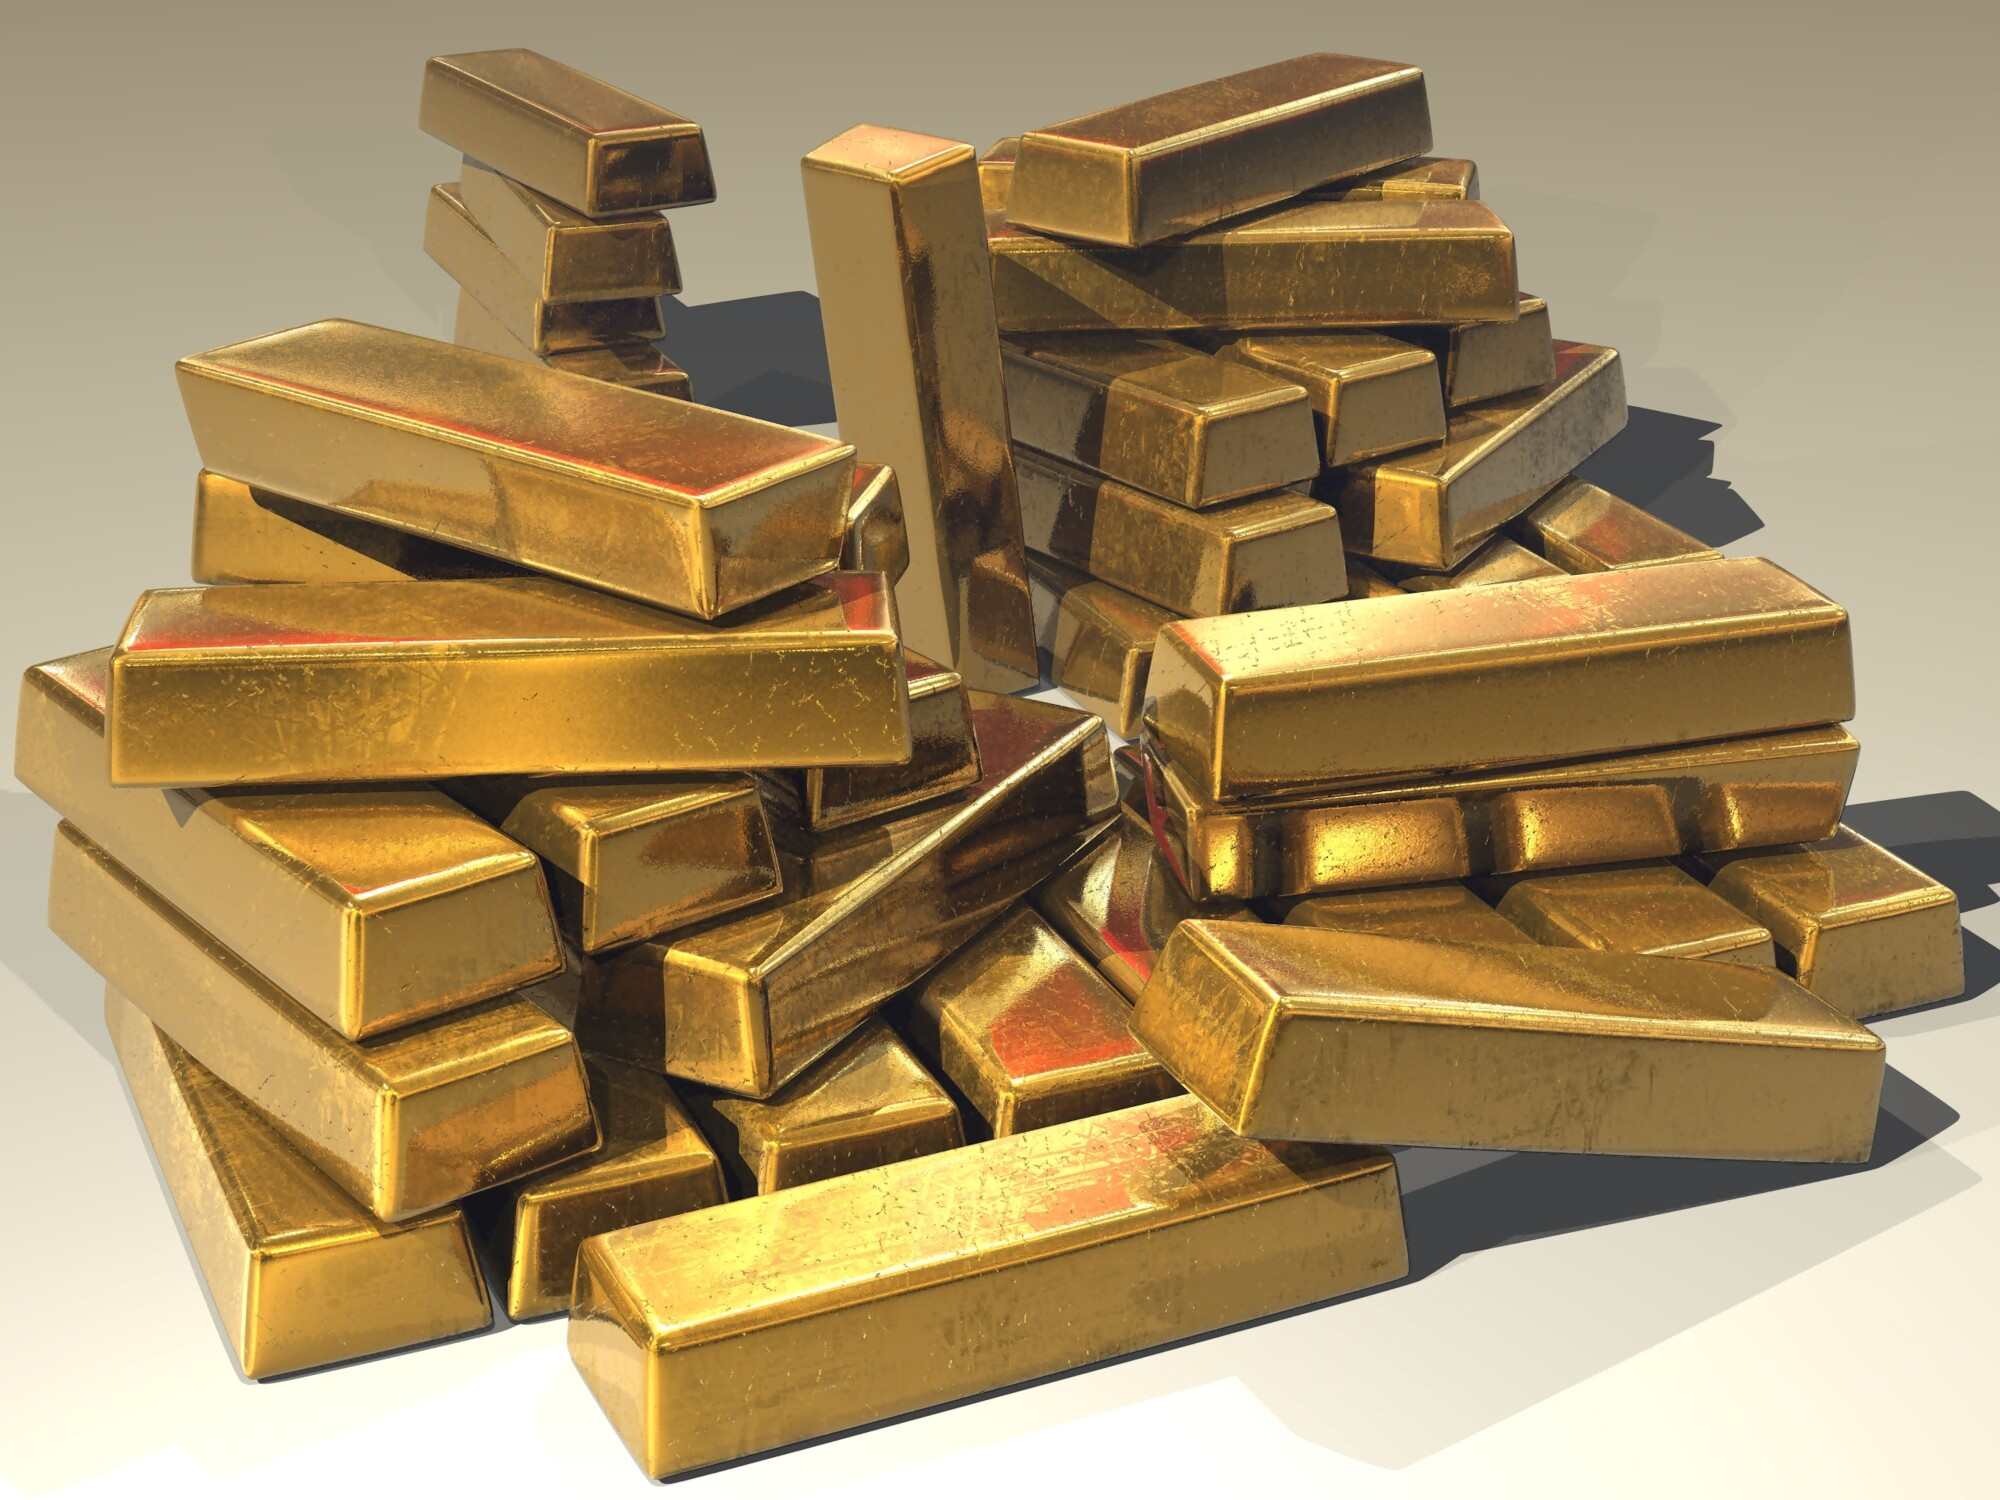 Key Facts About the Gold Rush in California